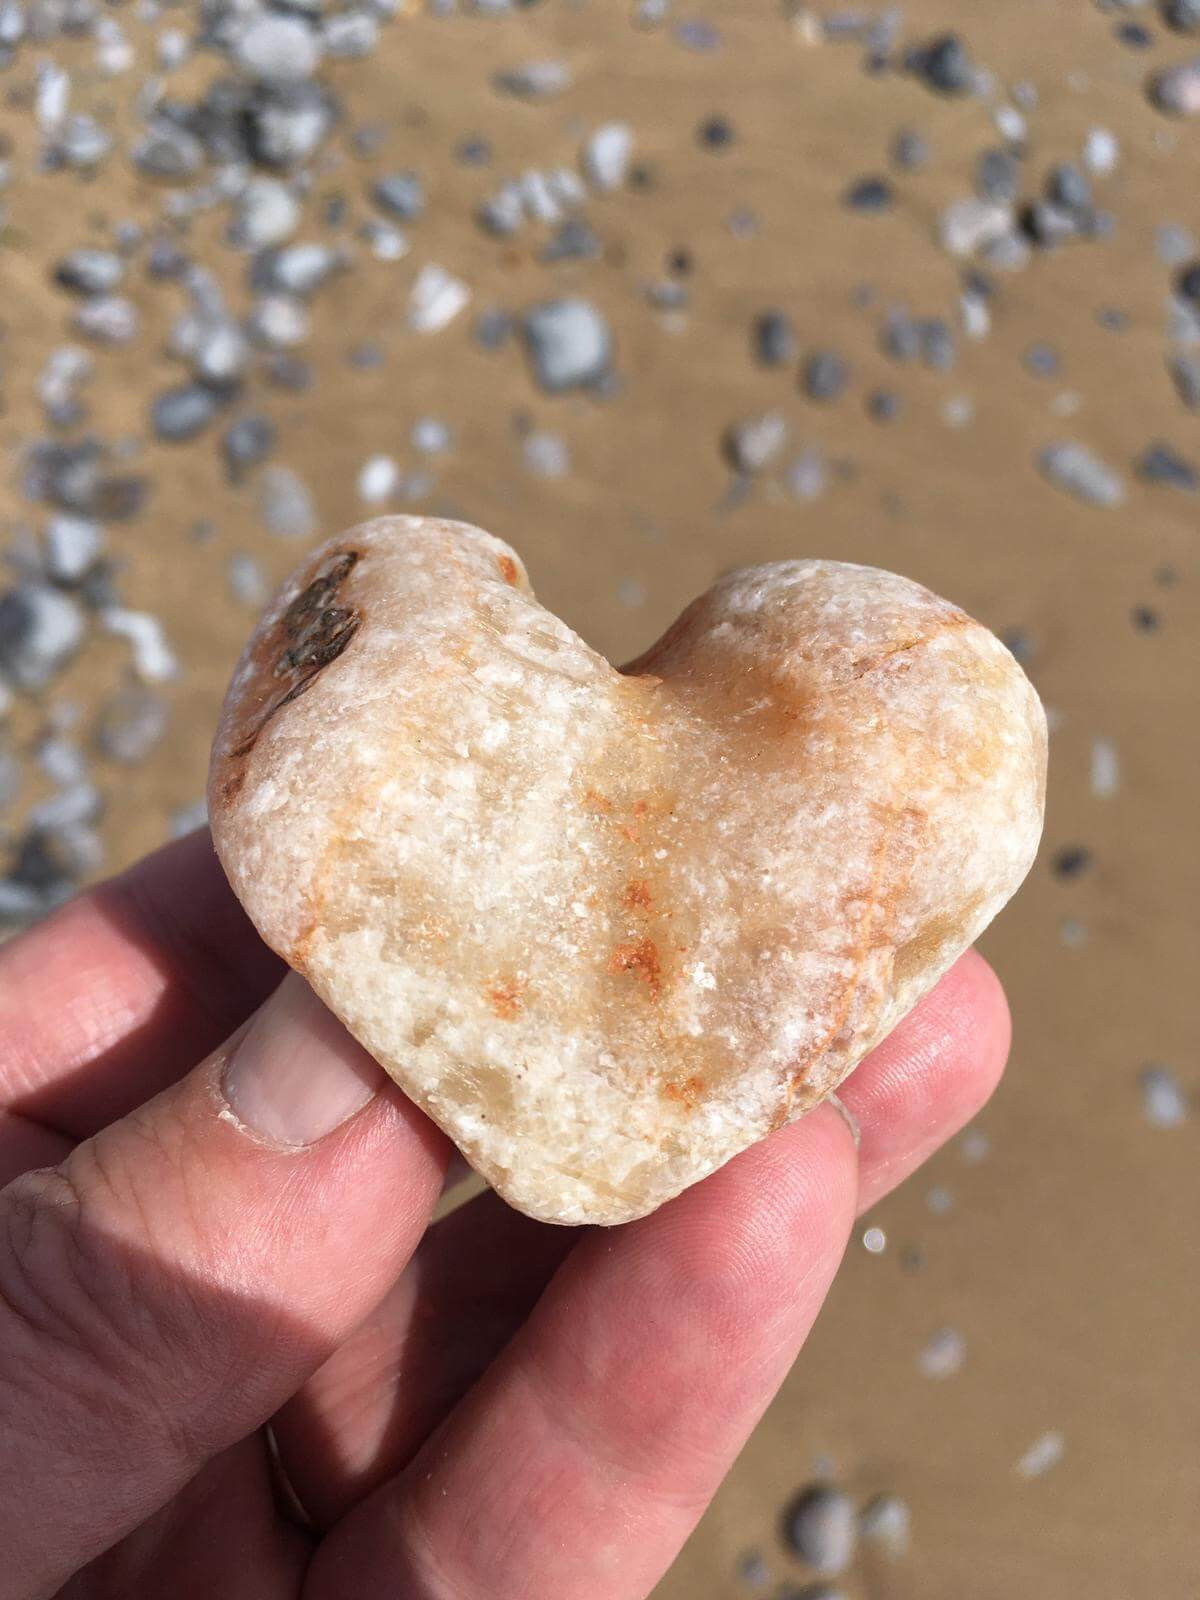 07: A stone found while walking on the beach in Swansea